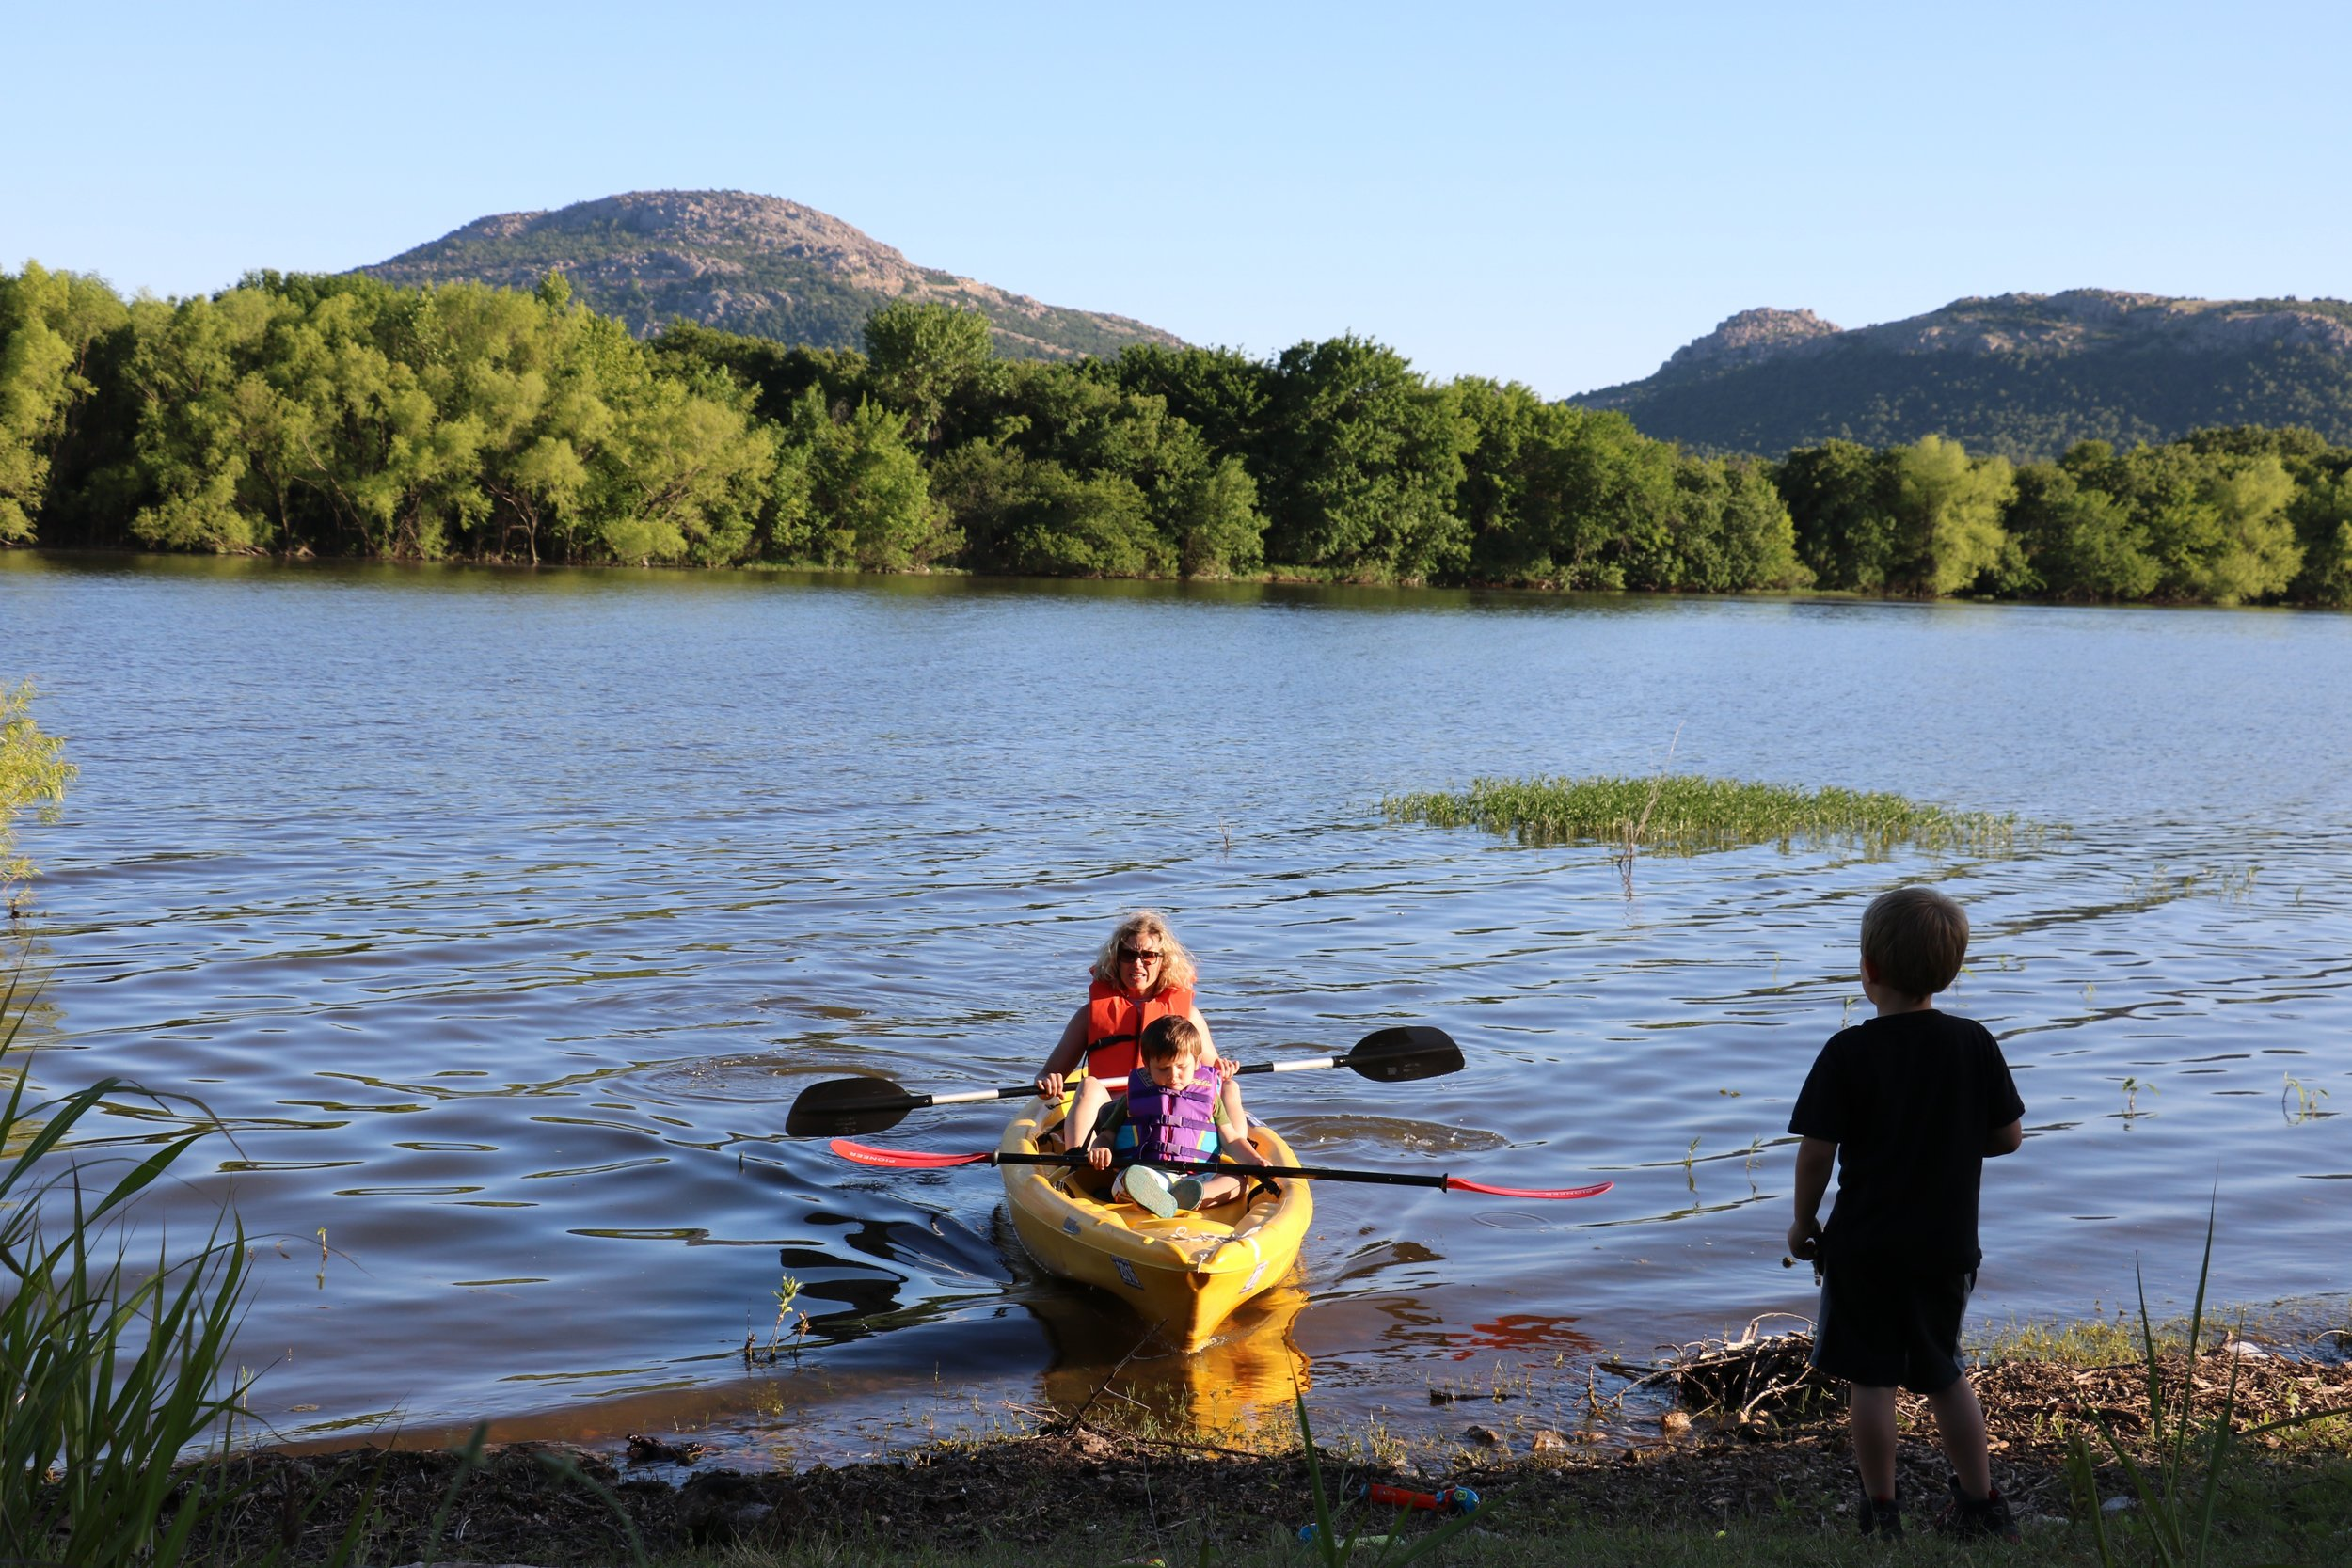 Kayak rentals are available at Robinson's Landing general store.